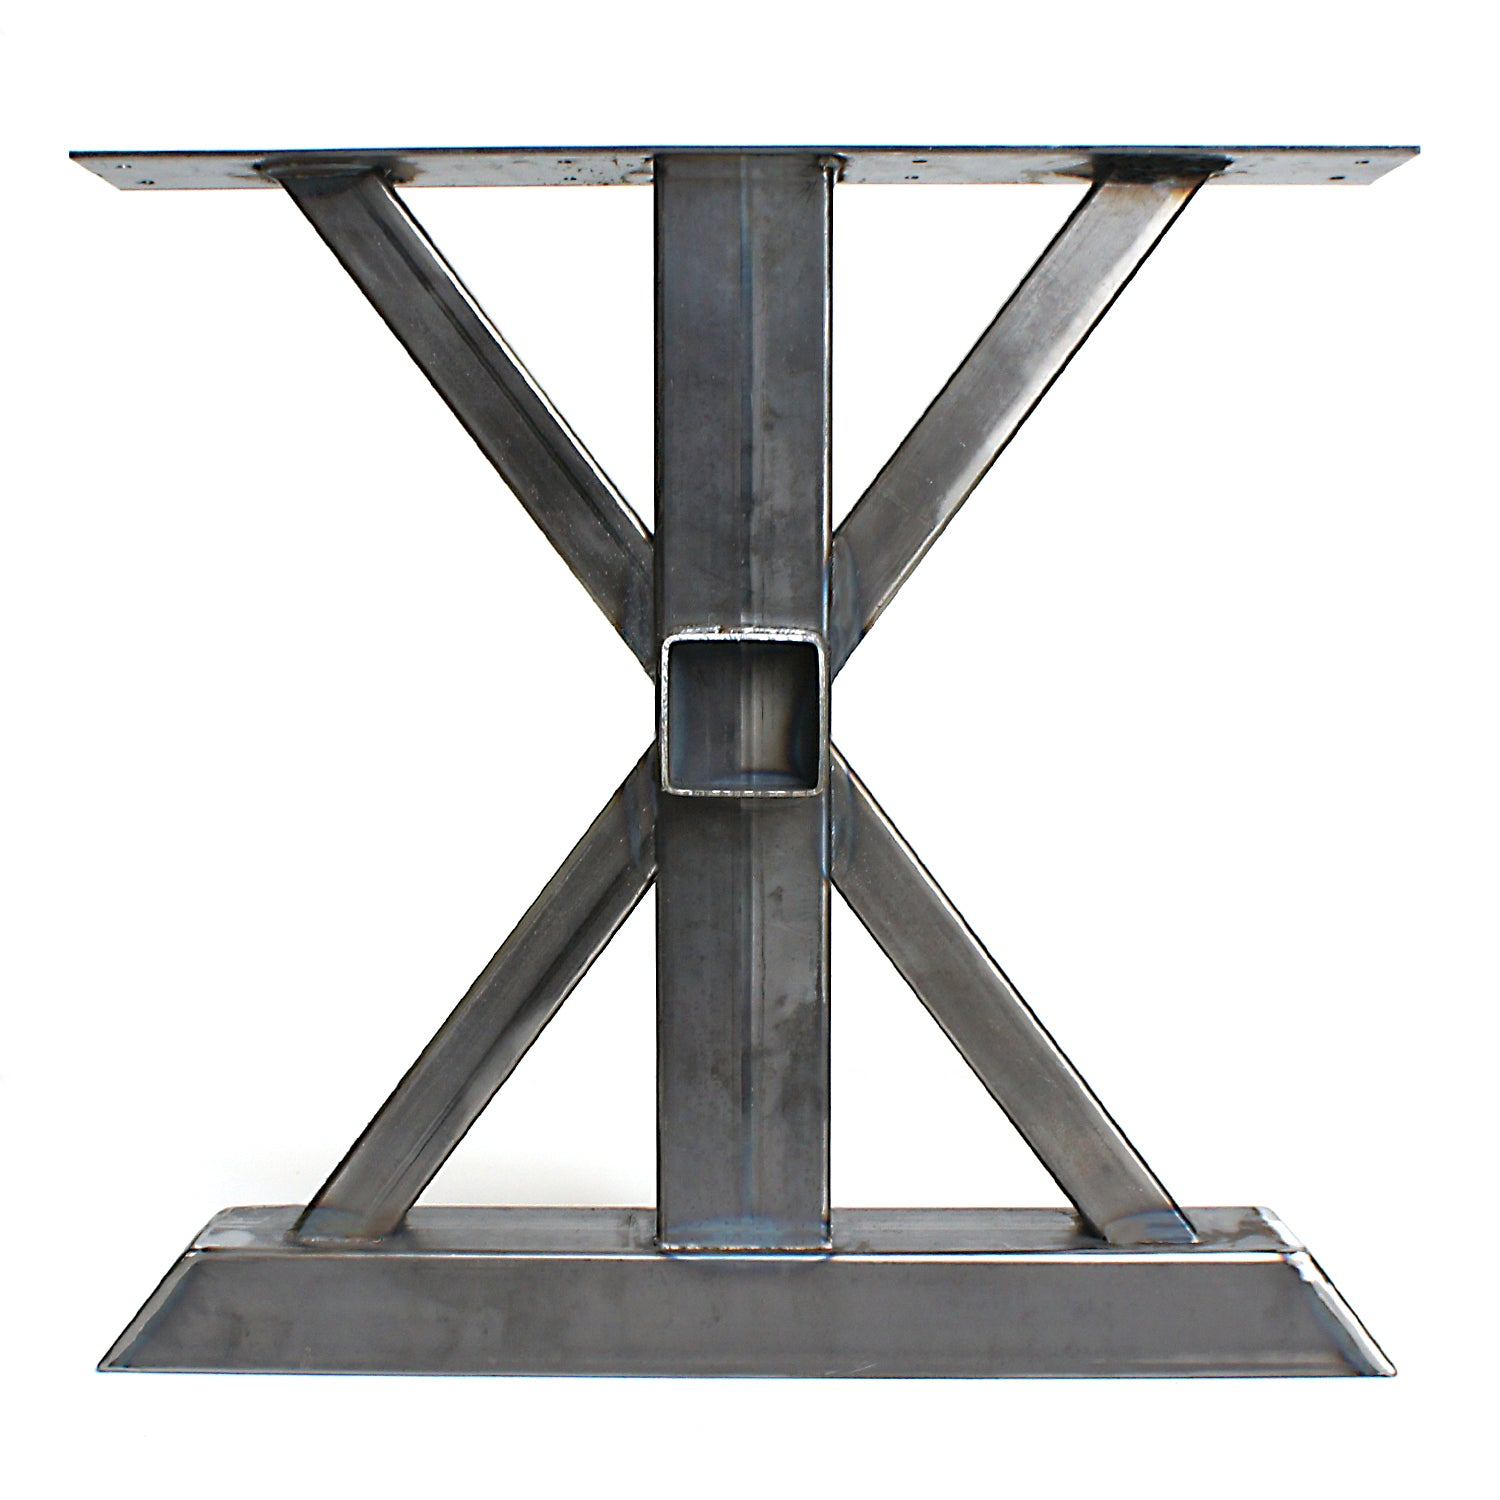 Magnificent Steel Table Legs Trestle Diy Table Legs Wood Beam Receptacle Download Free Architecture Designs Scobabritishbridgeorg